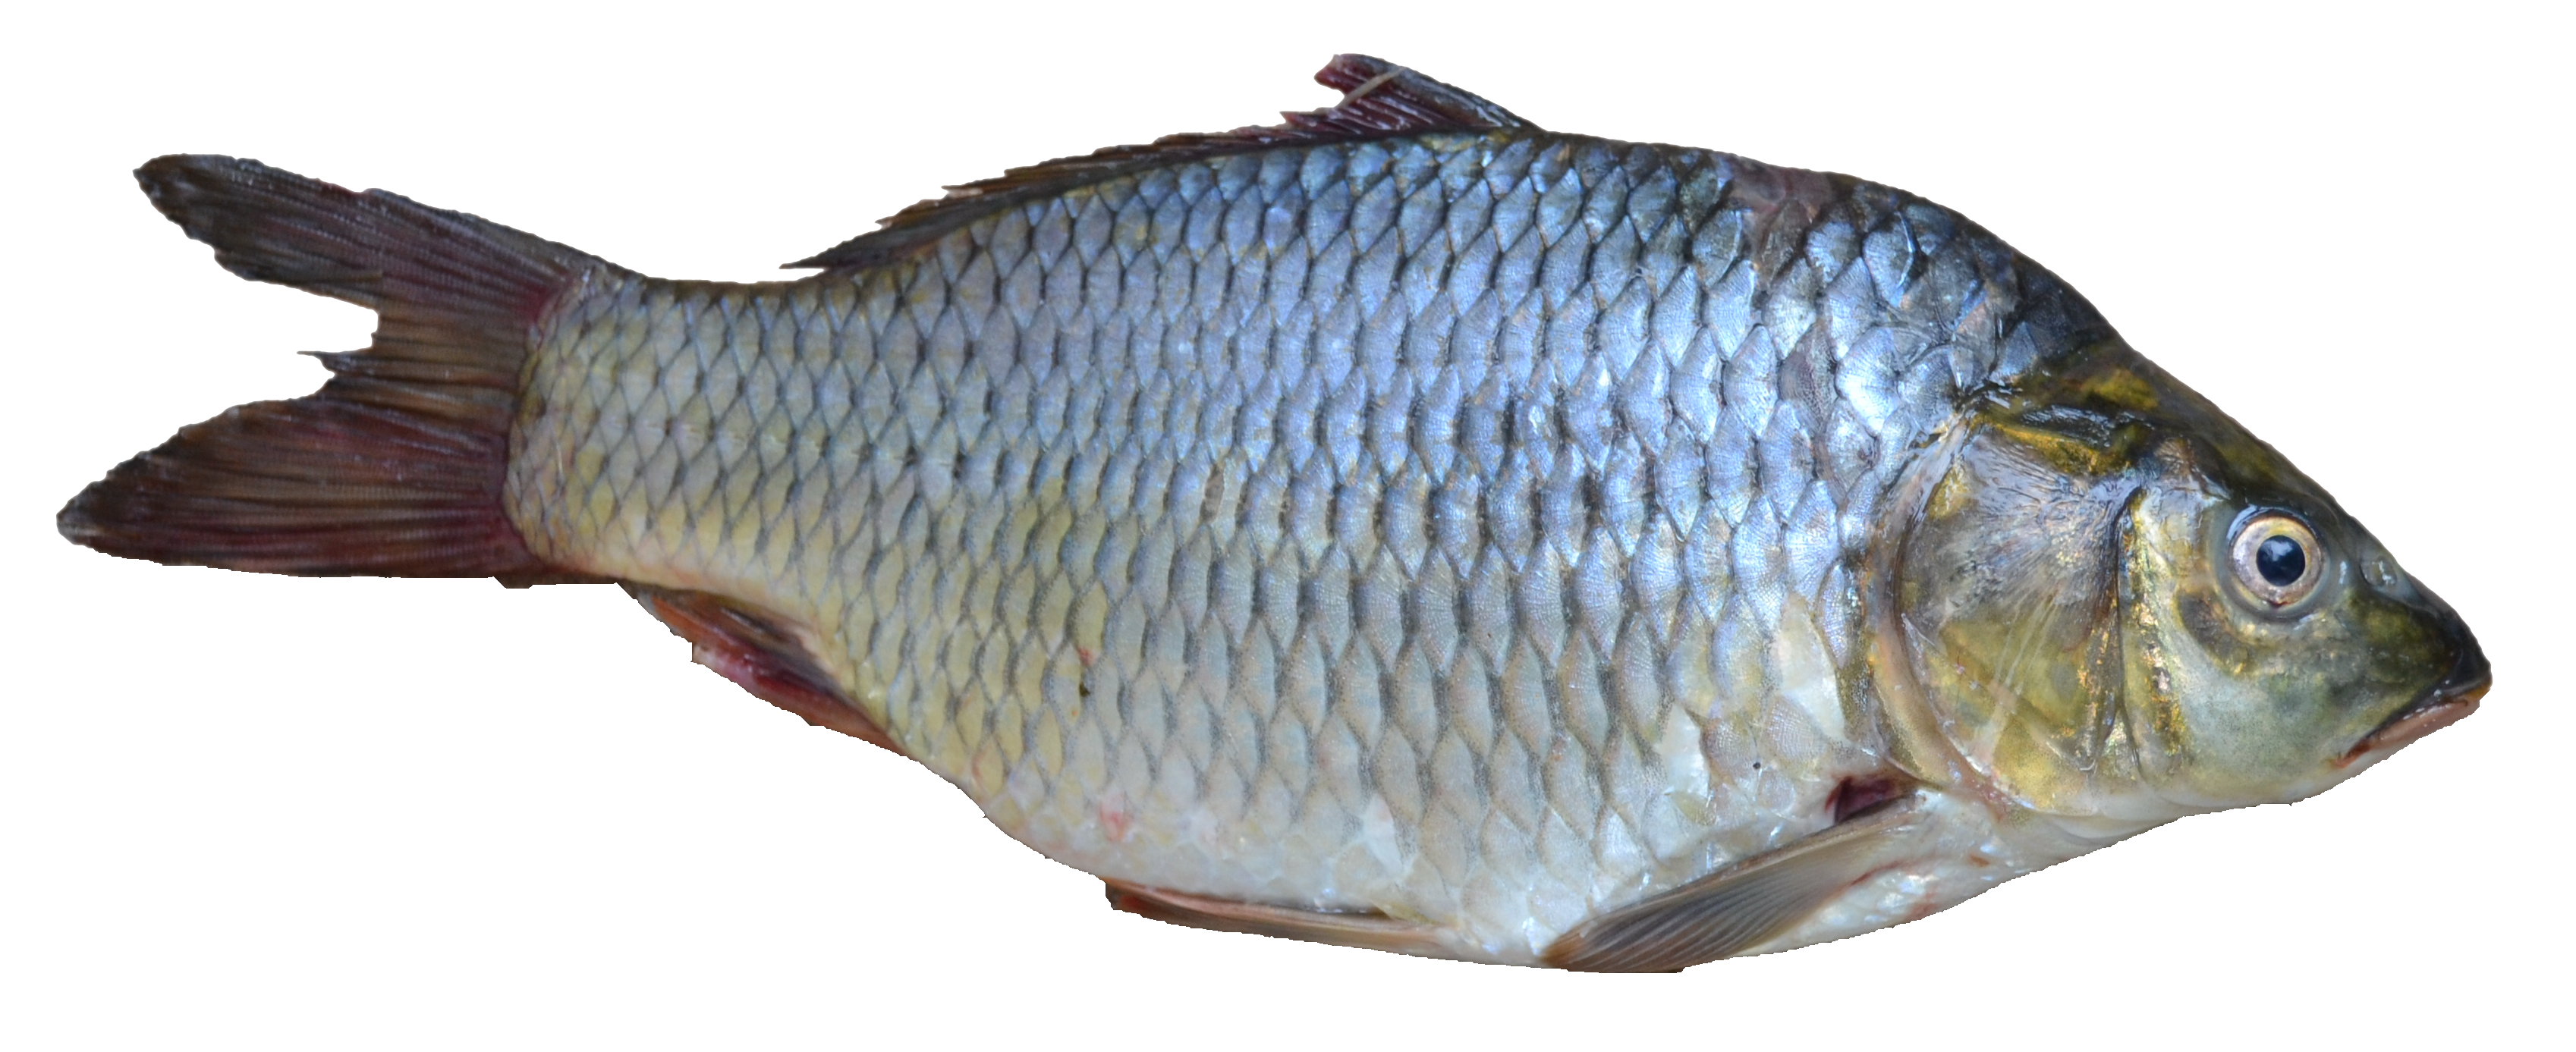 Download Free High quality Fish Png Transparent Images